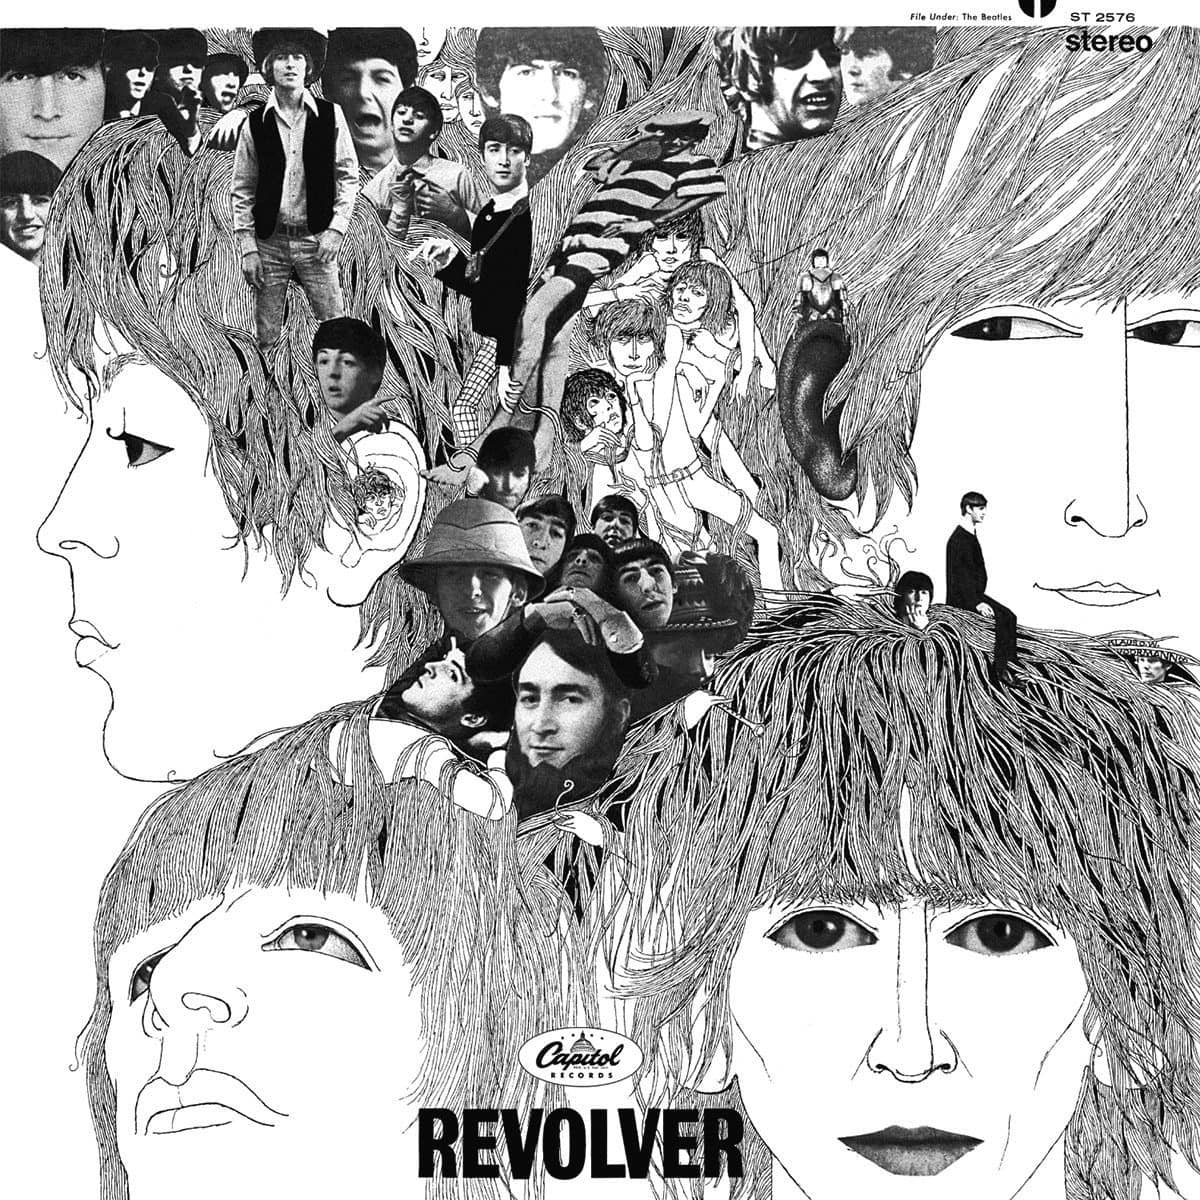 For No One – The Beatles Bible